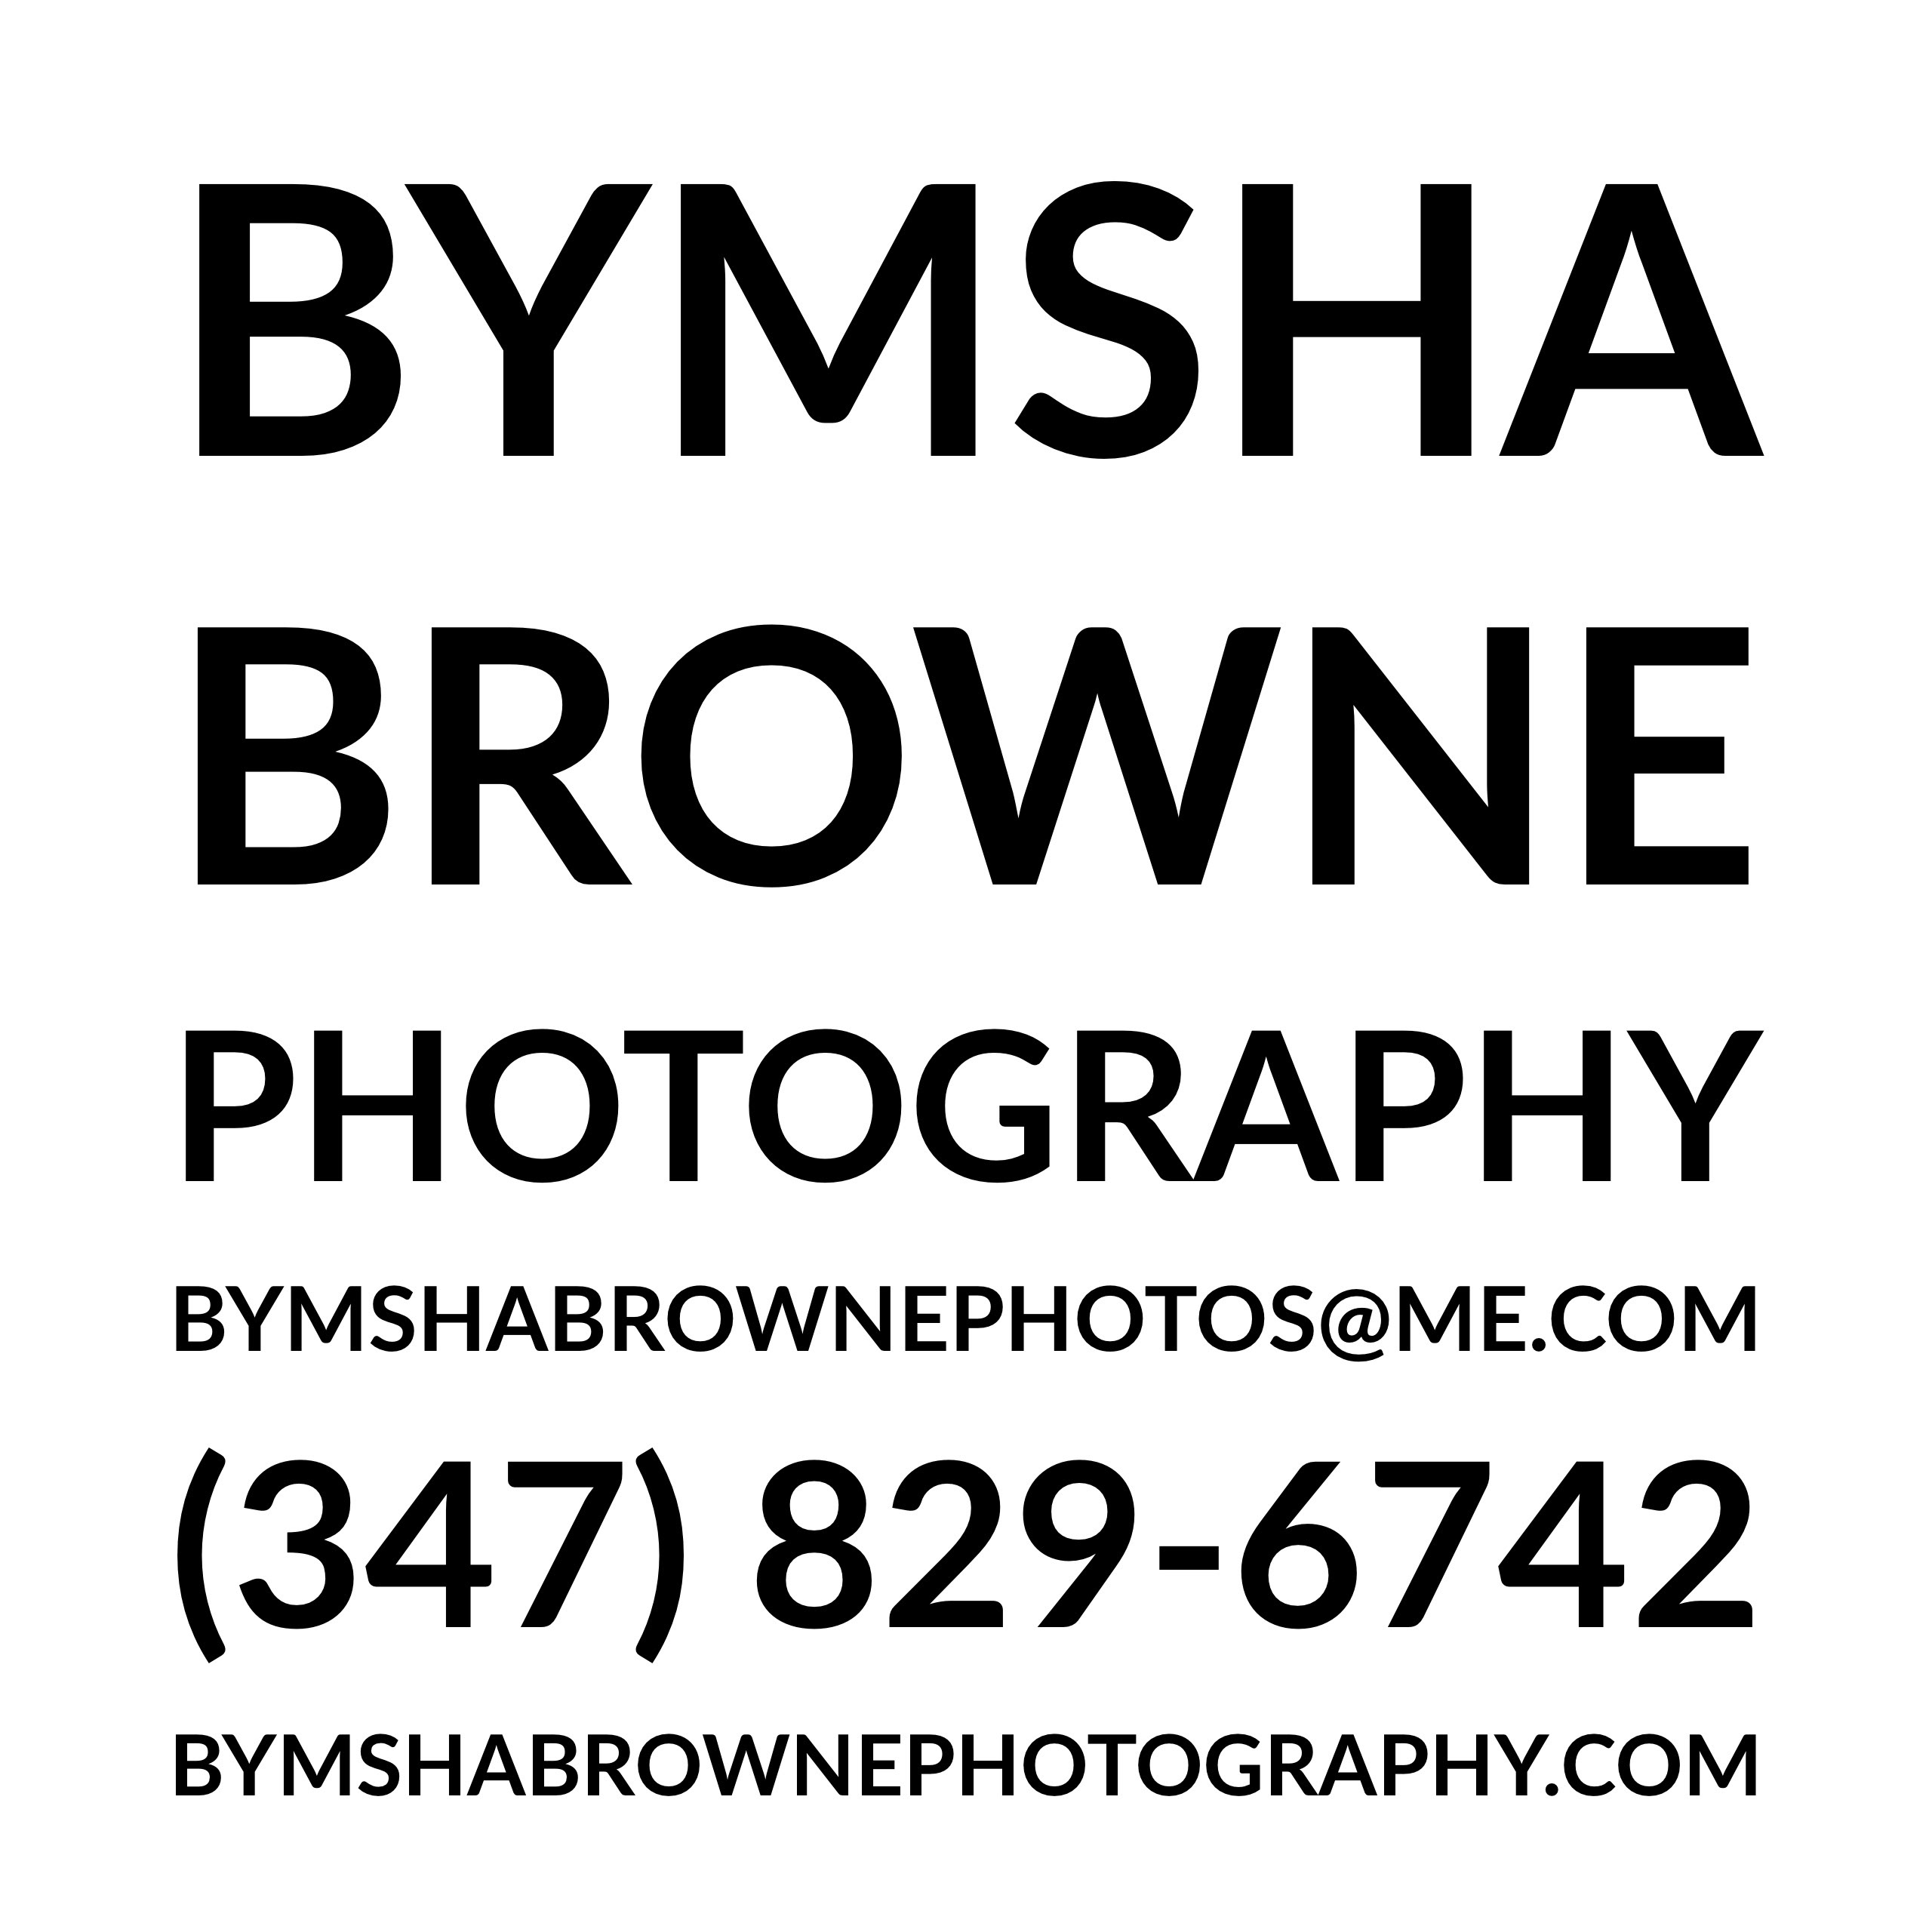 Bymsha Browne Photography